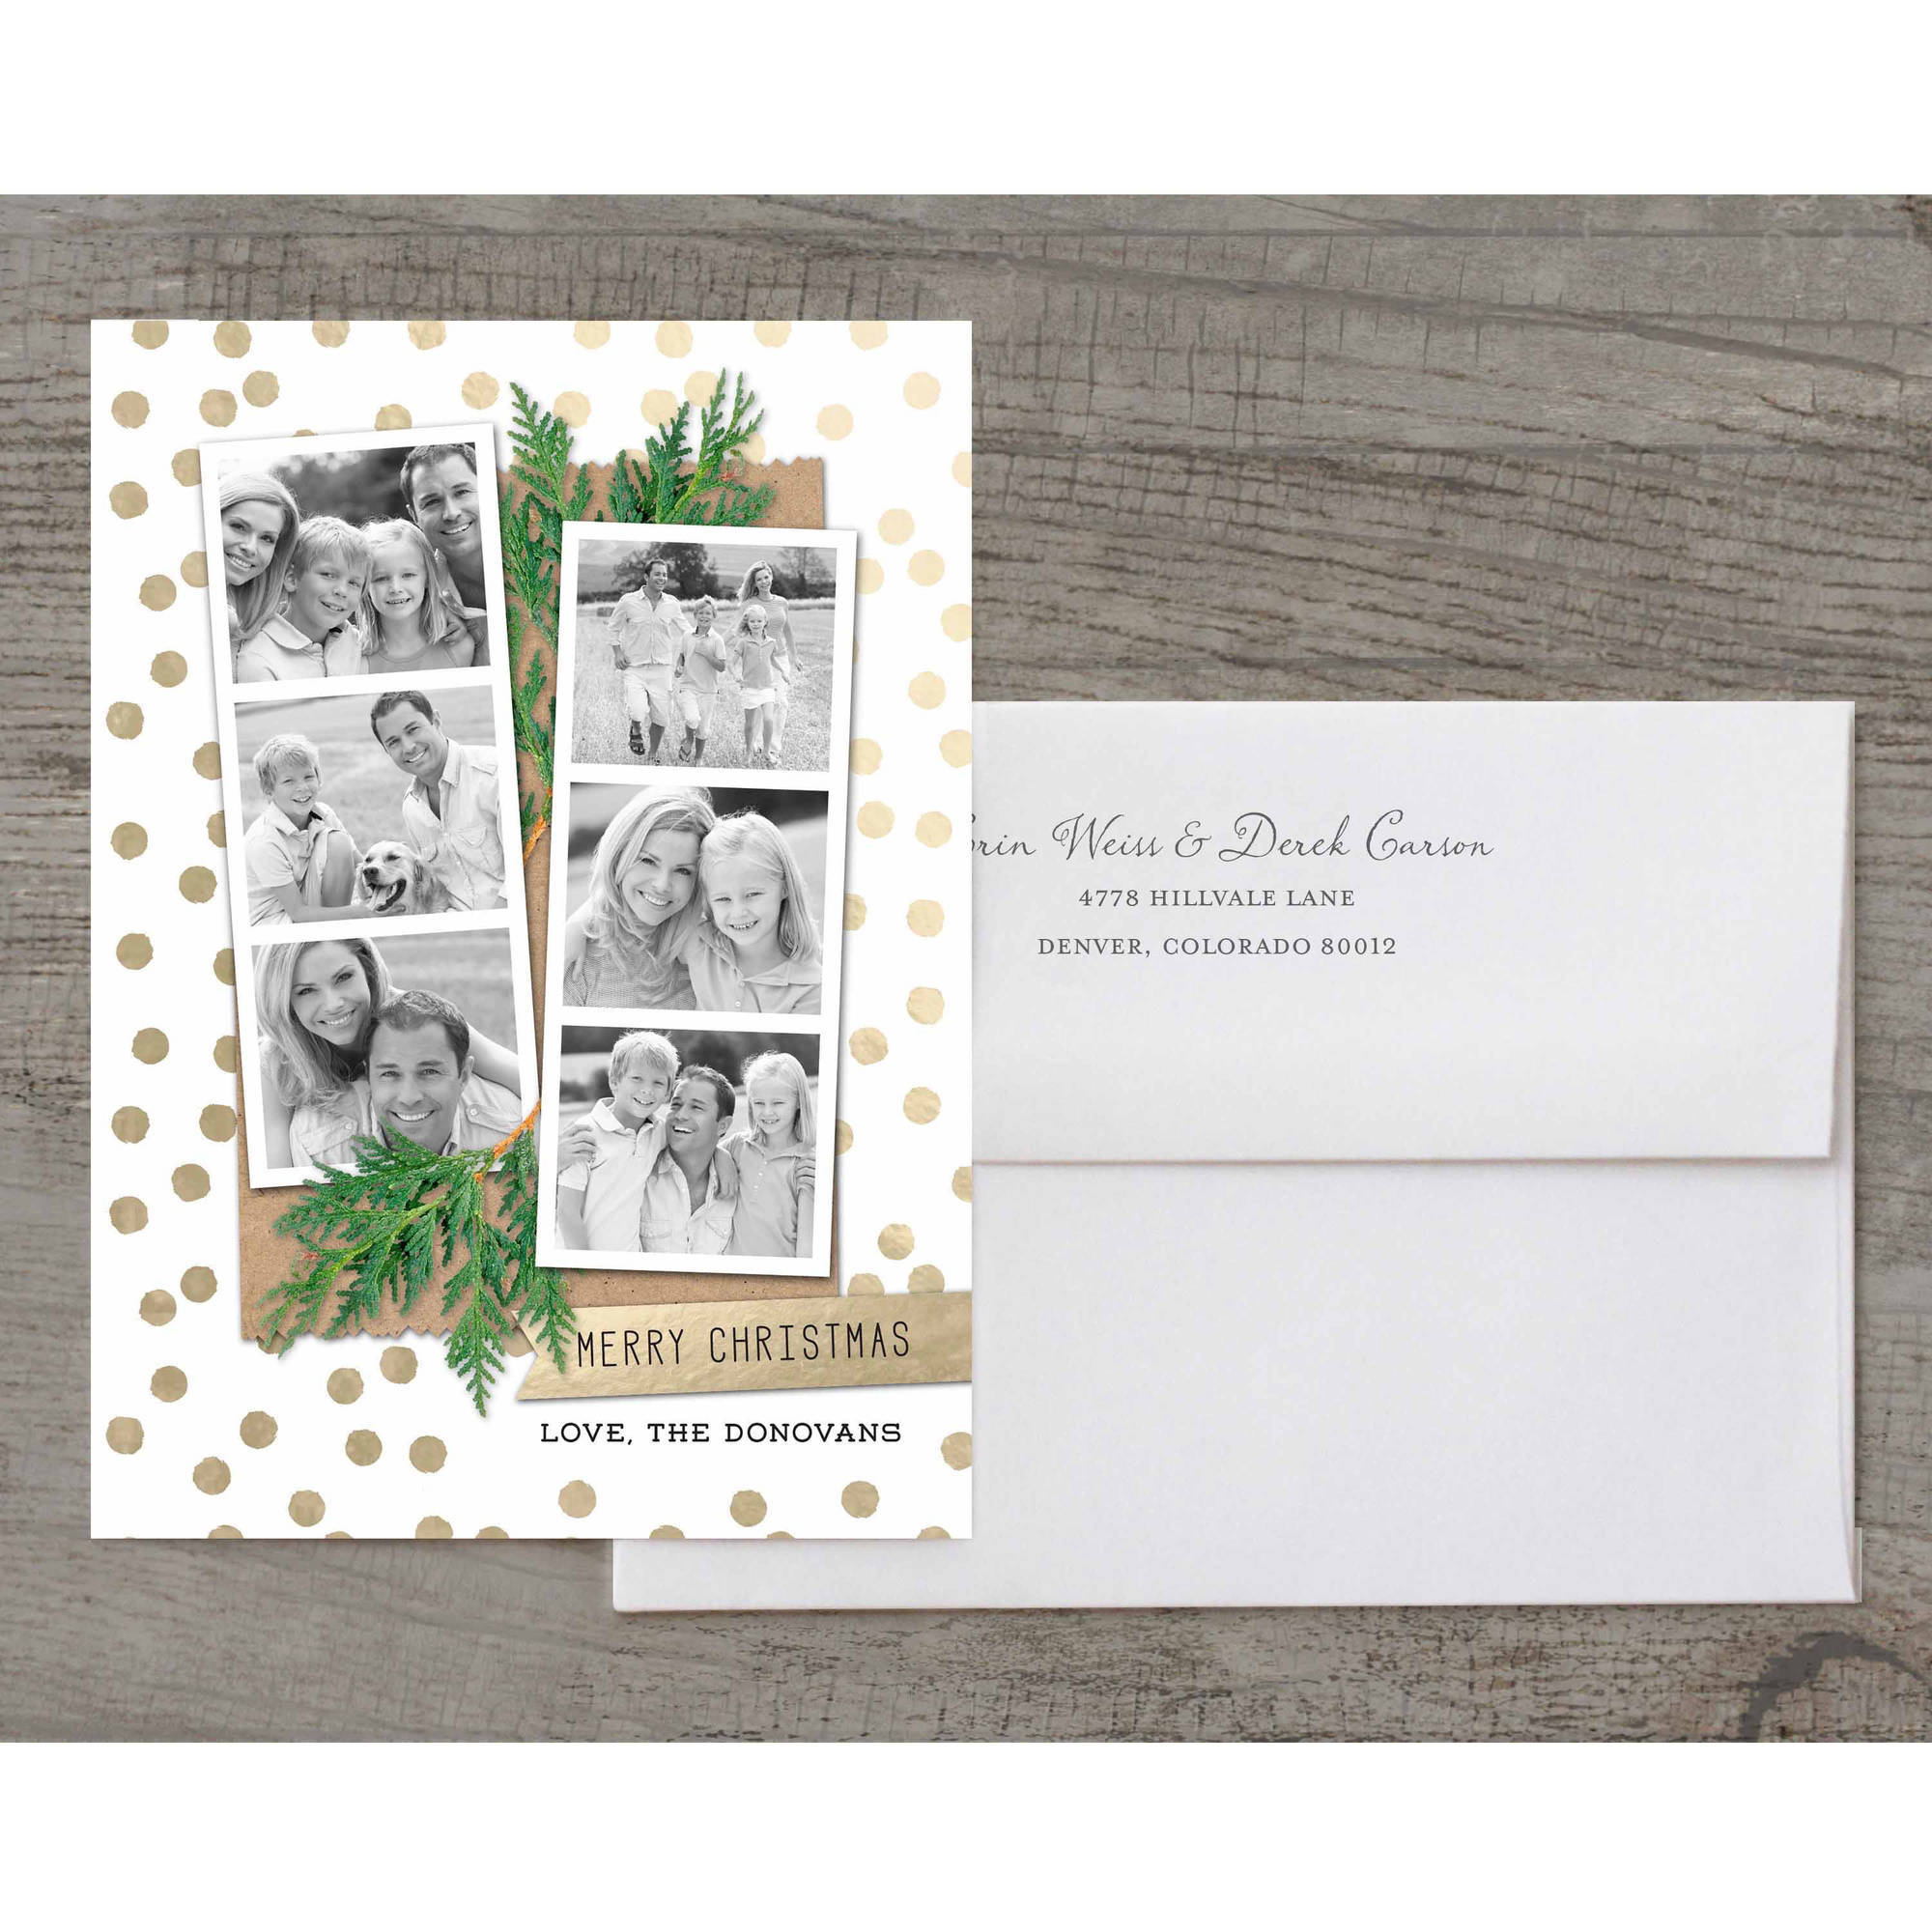 Merry Christmas Photo Strips Deluxe Holiday Card